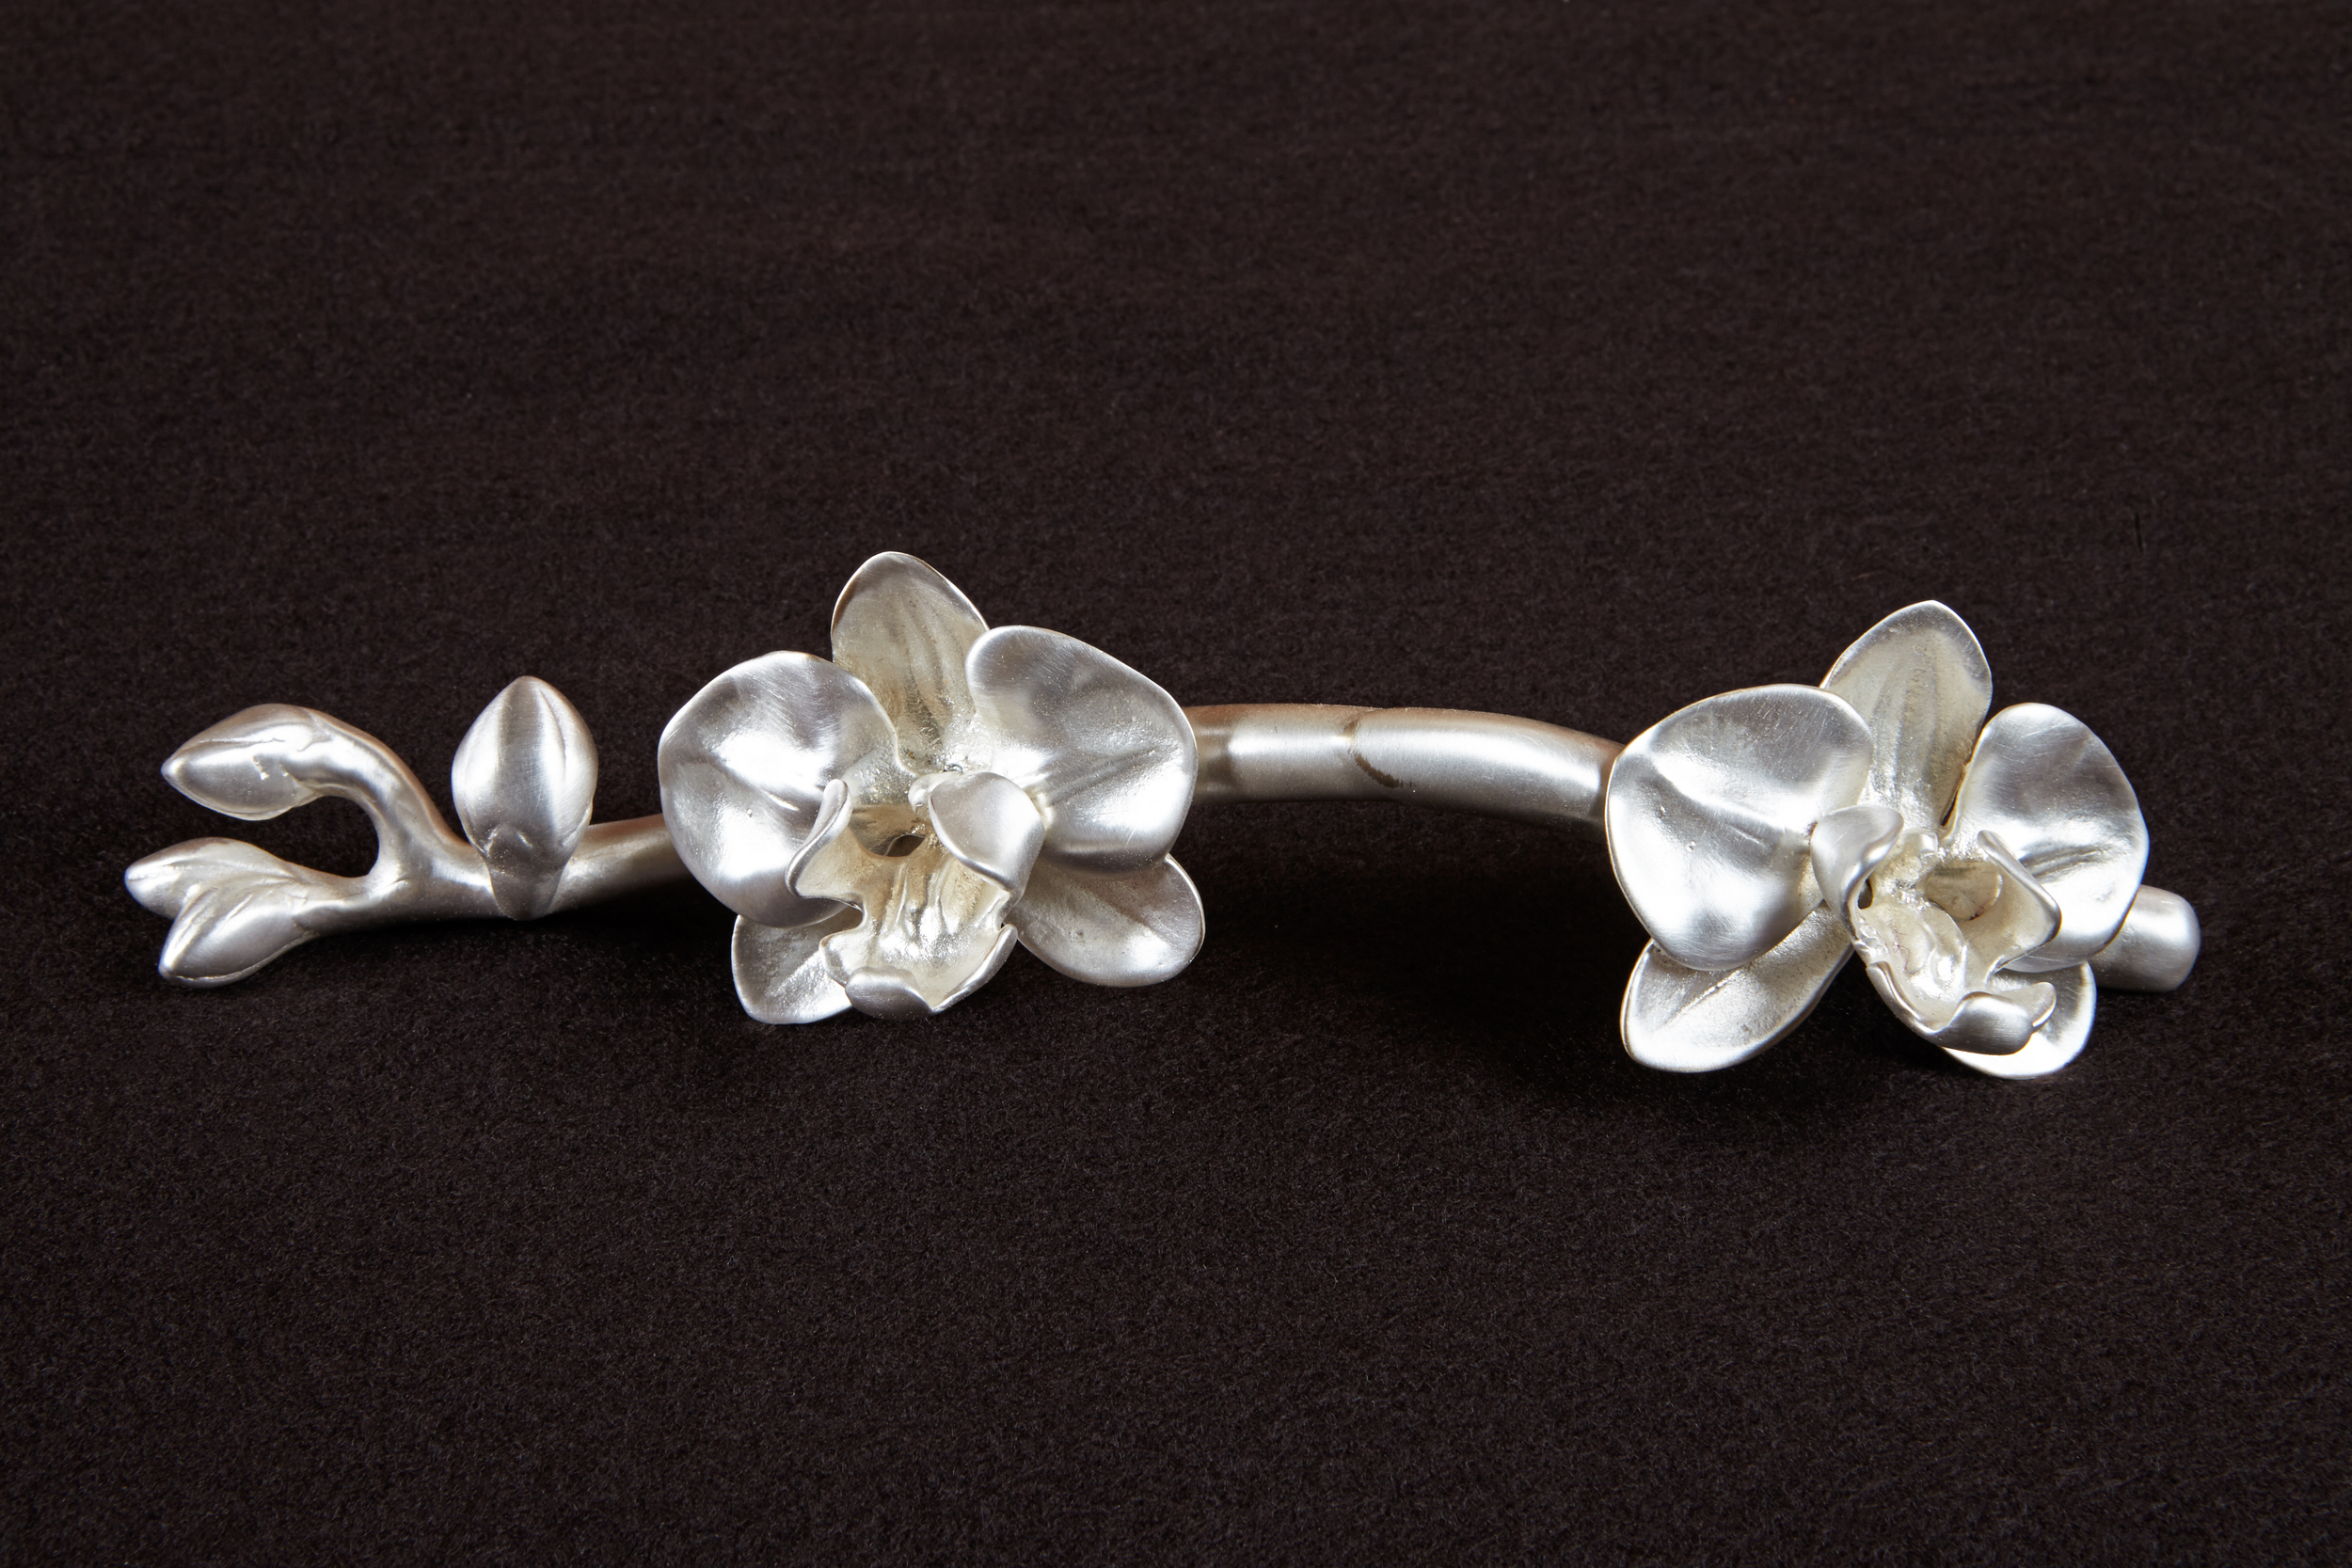 The height of elegance, Martin Pierce's silver plated orchid stem pull